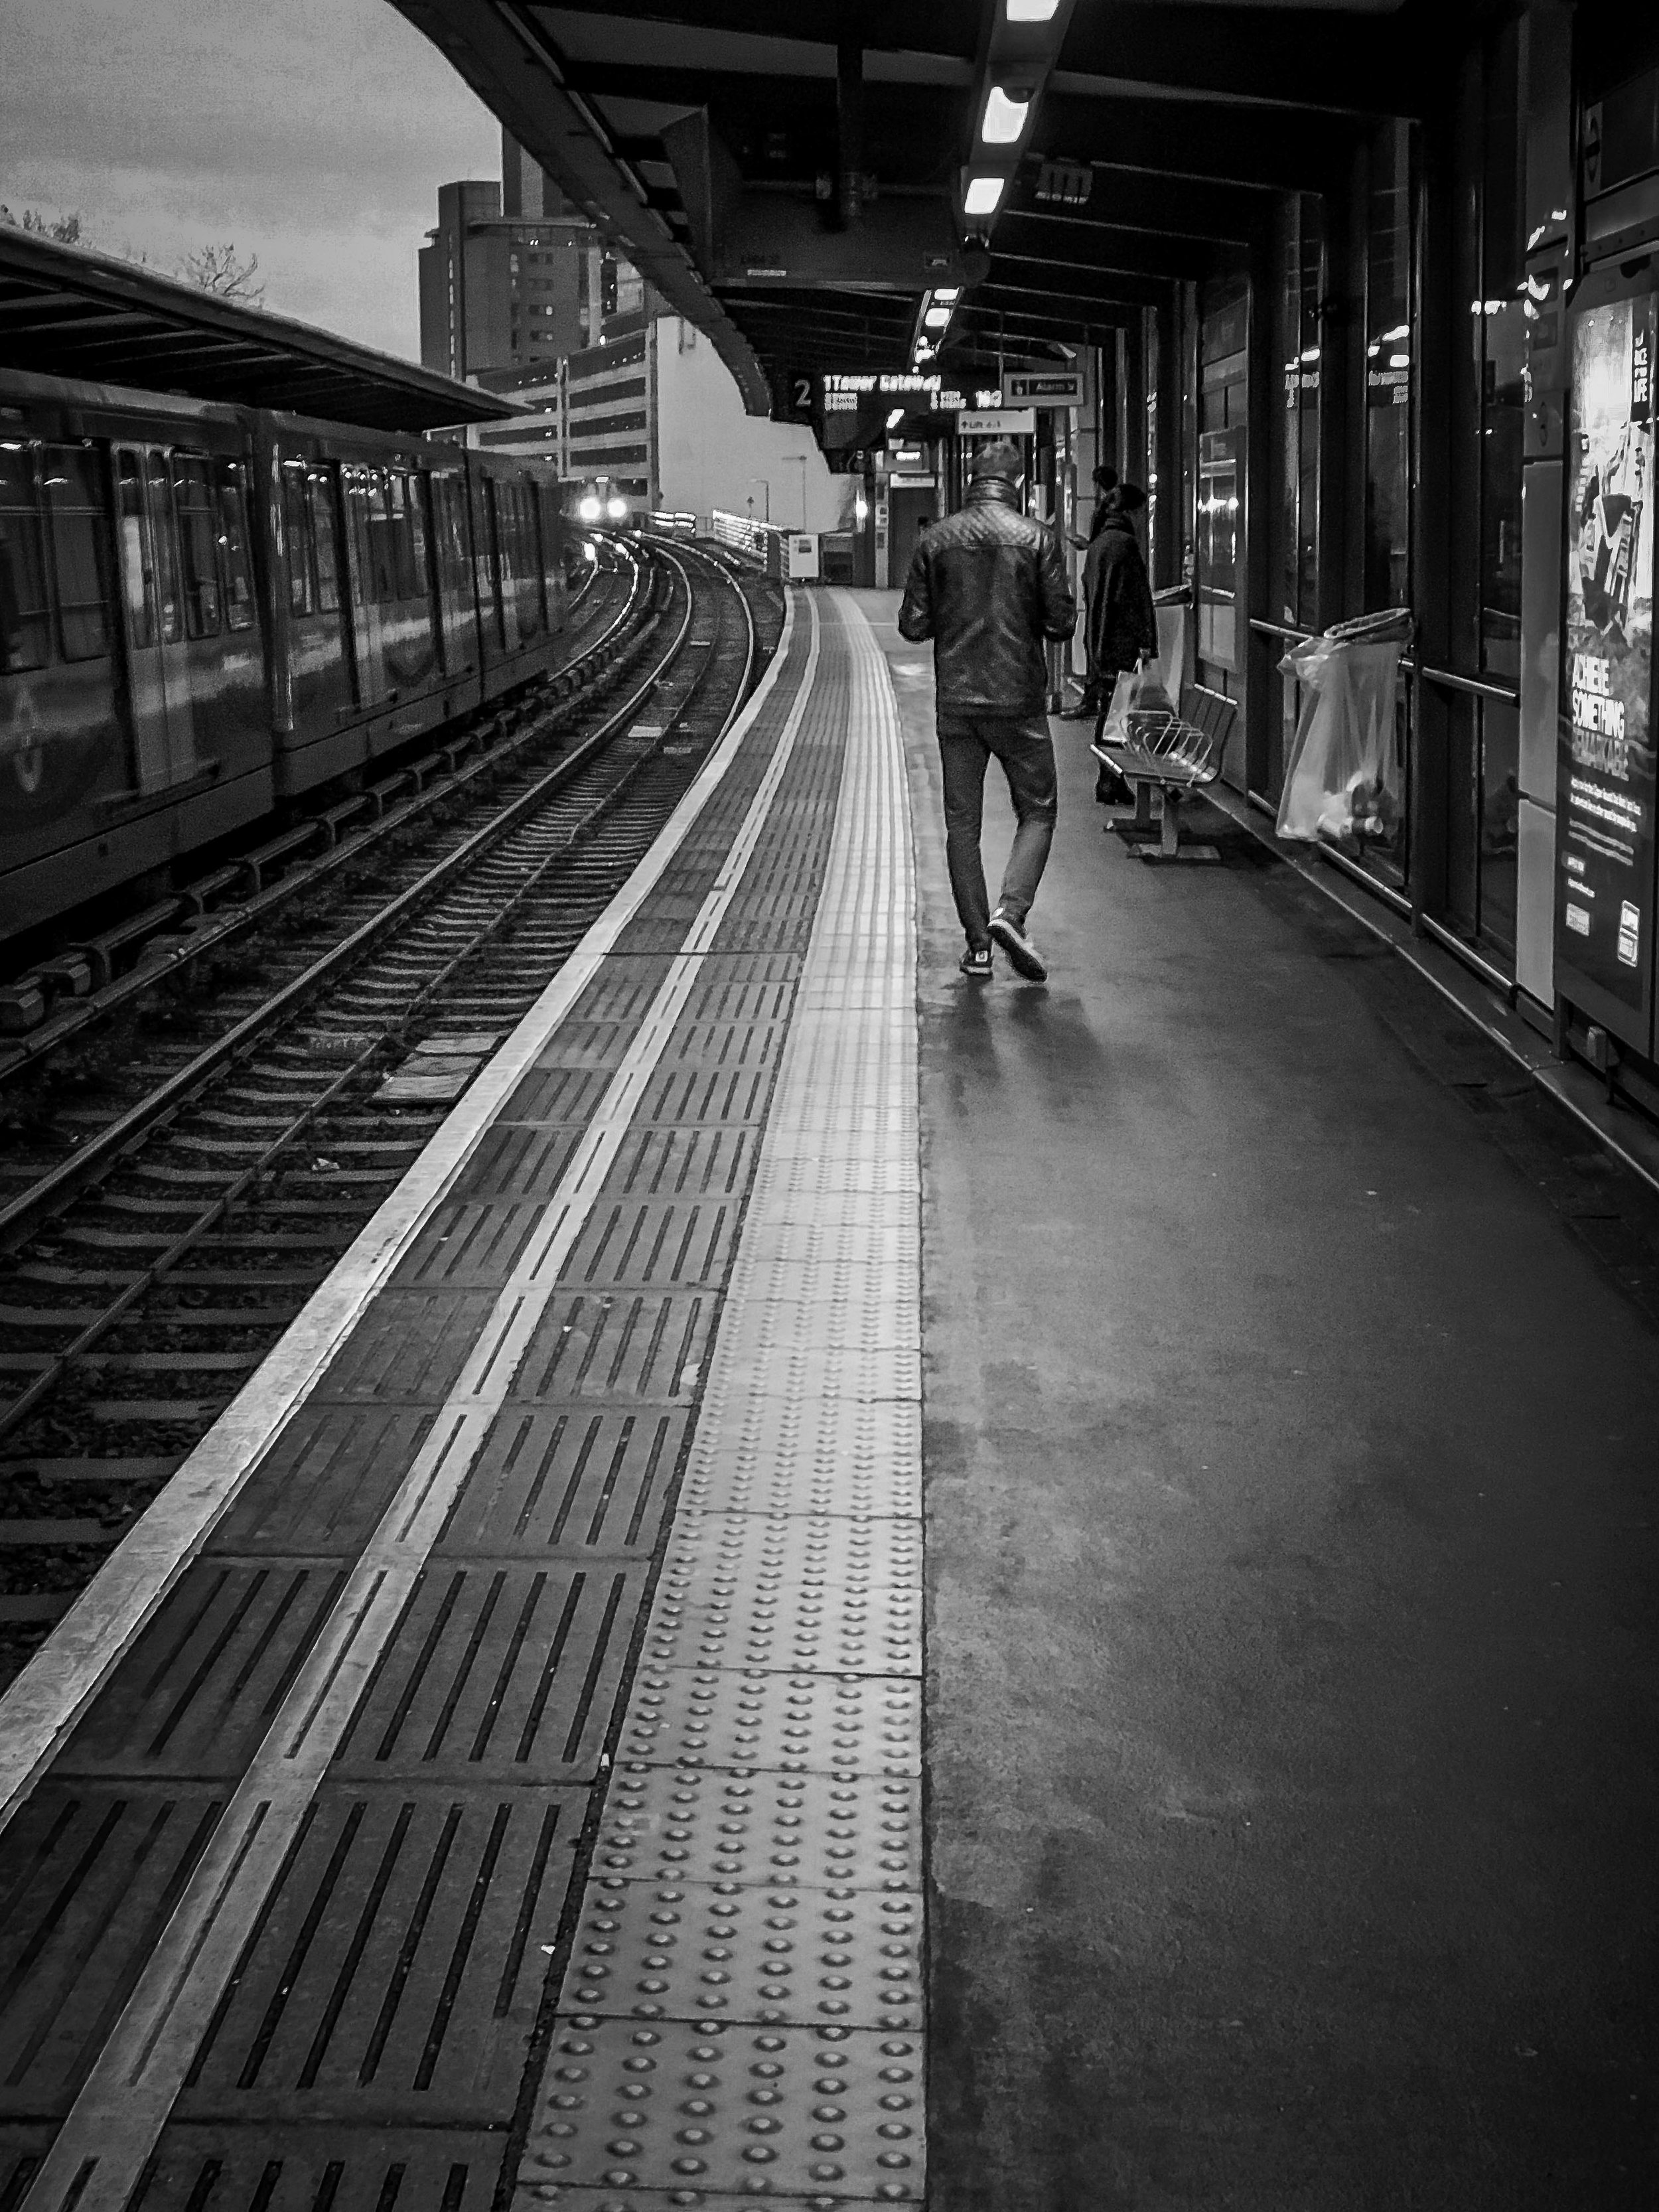 Man on platform in Black and White